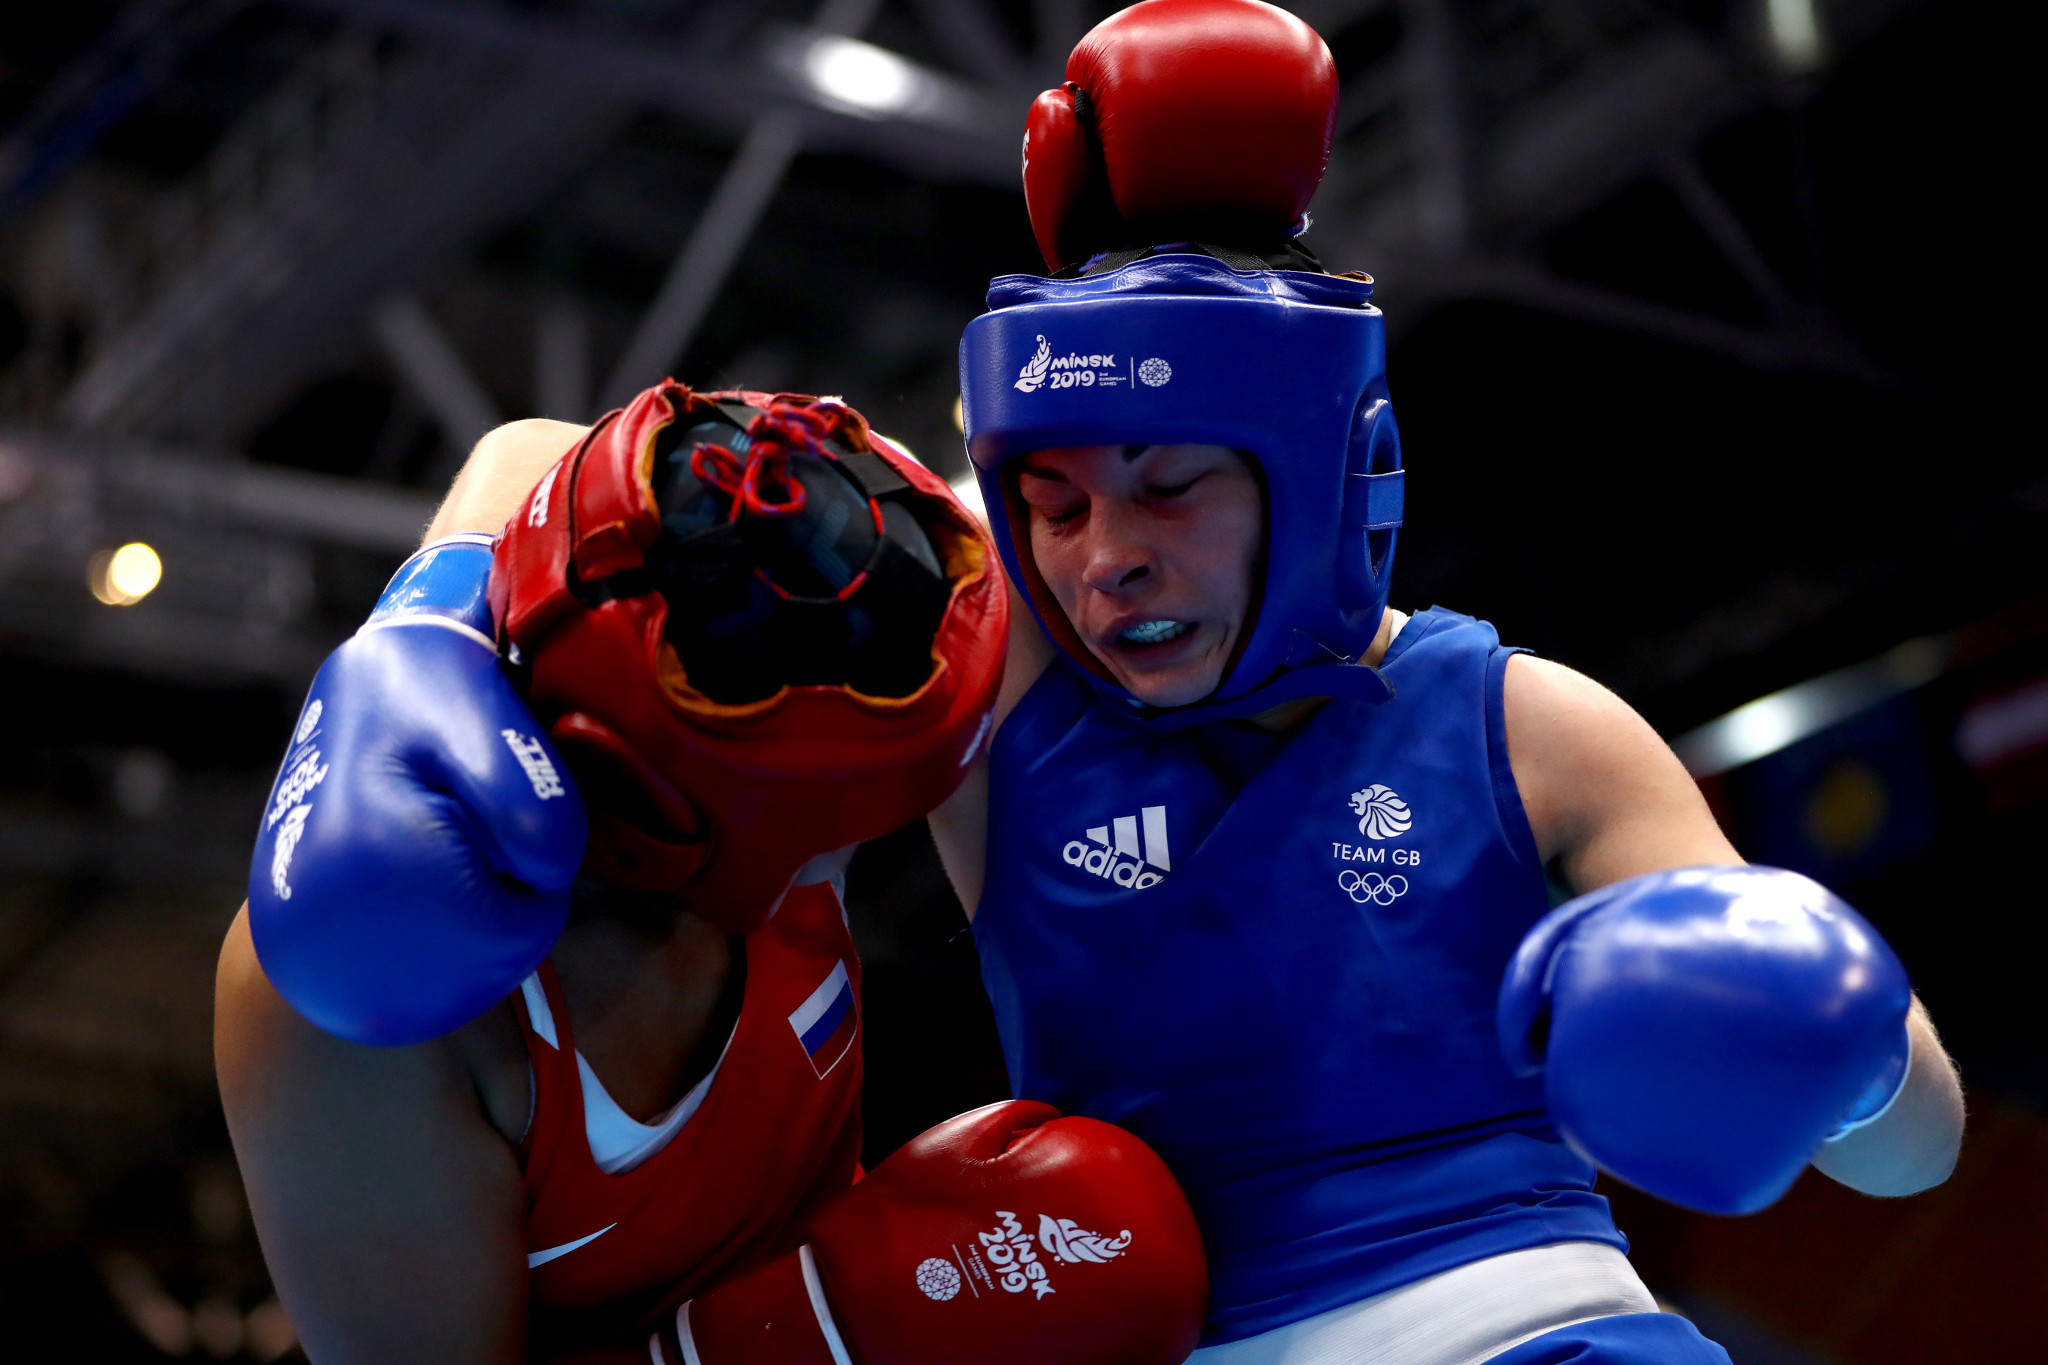 Middleweight world champion Lauren Price is set to take part in the training camp ©Getty Images